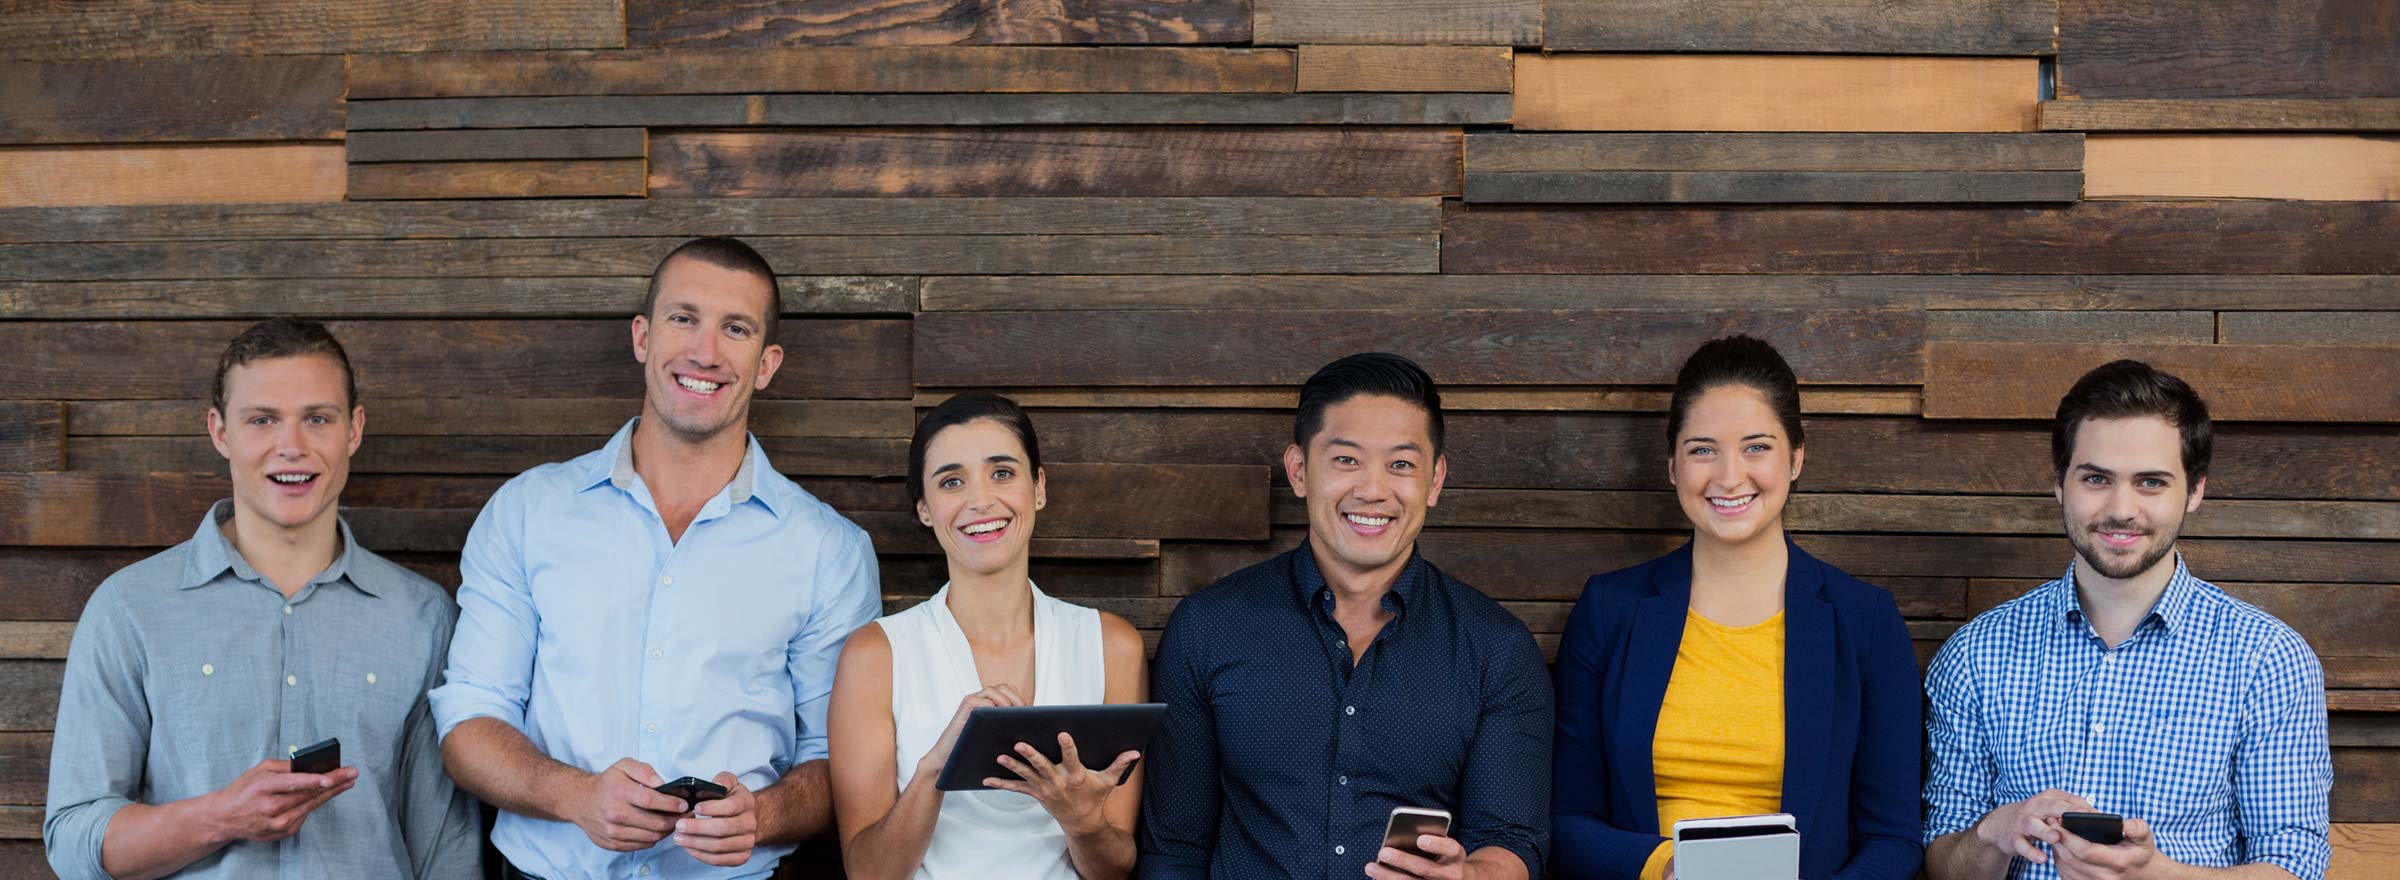 two women and four men standing against a wooden wall, holding cellphones or tablets, and smiling